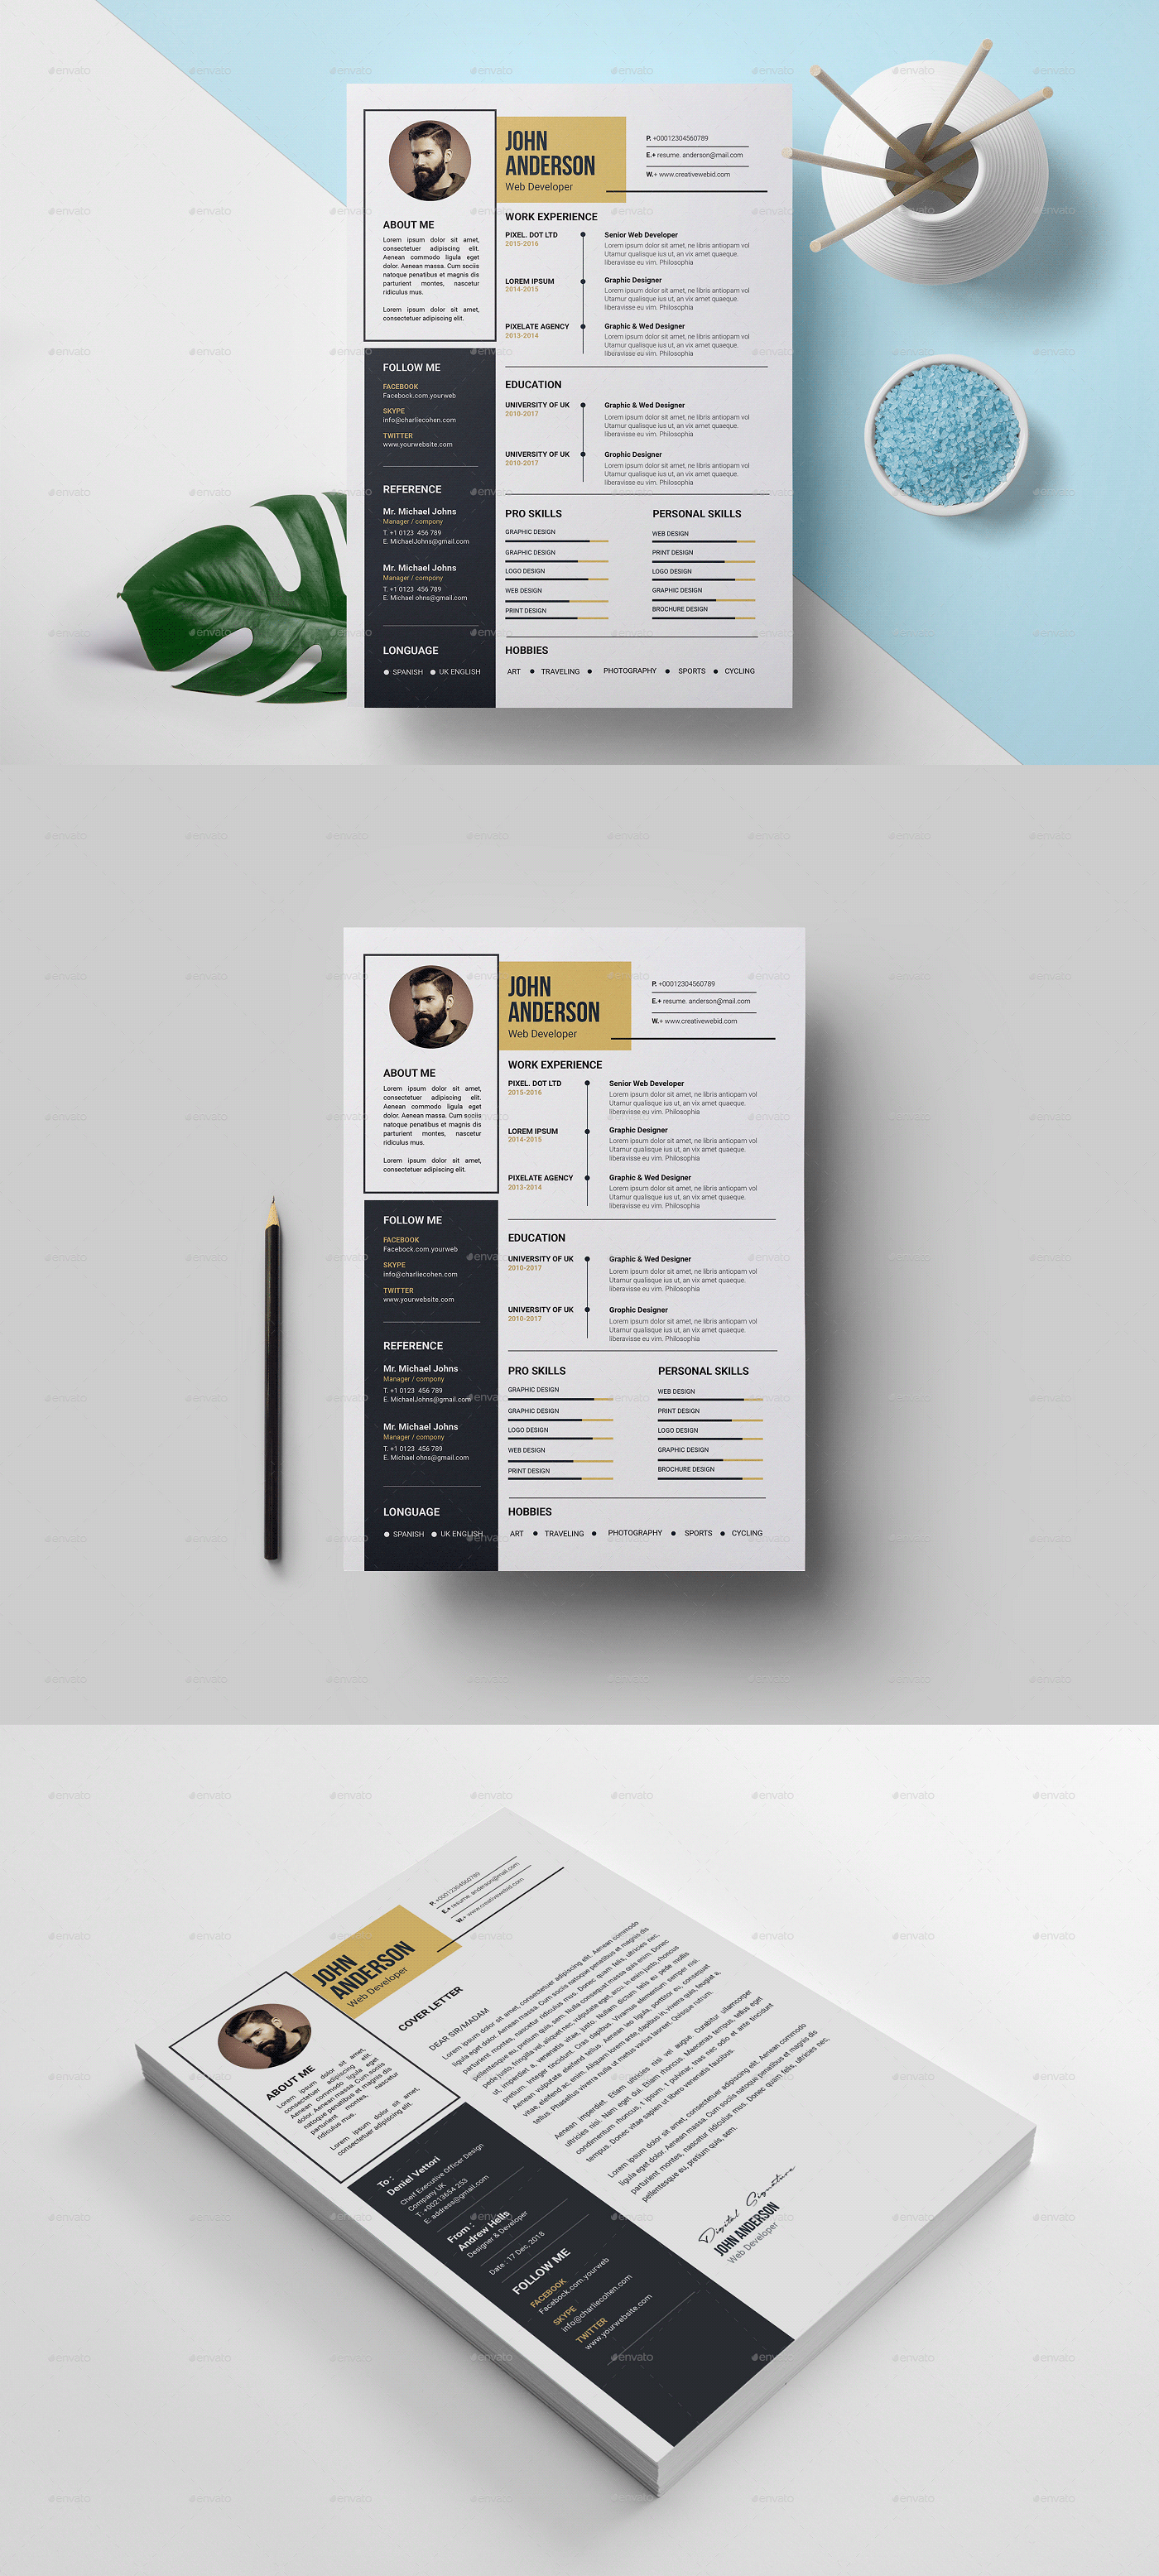 A4 Paper Size Resume Template Resume Template Downloadable Resume Template Templates